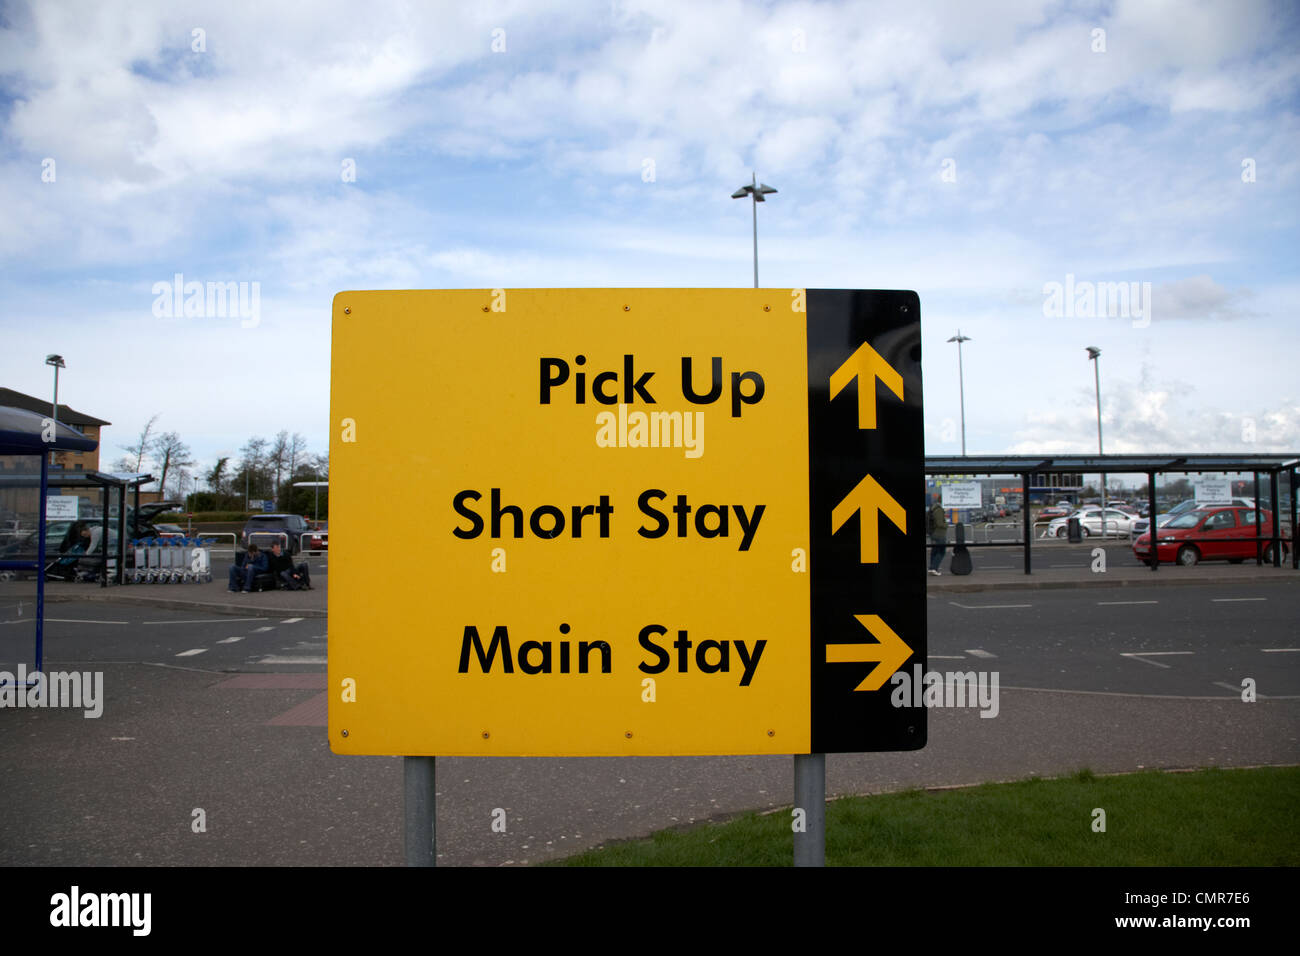 Bristol Airport Long Stay Parking >> Airport Car Park Stock Photos & Airport Car Park Stock Images - Alamy